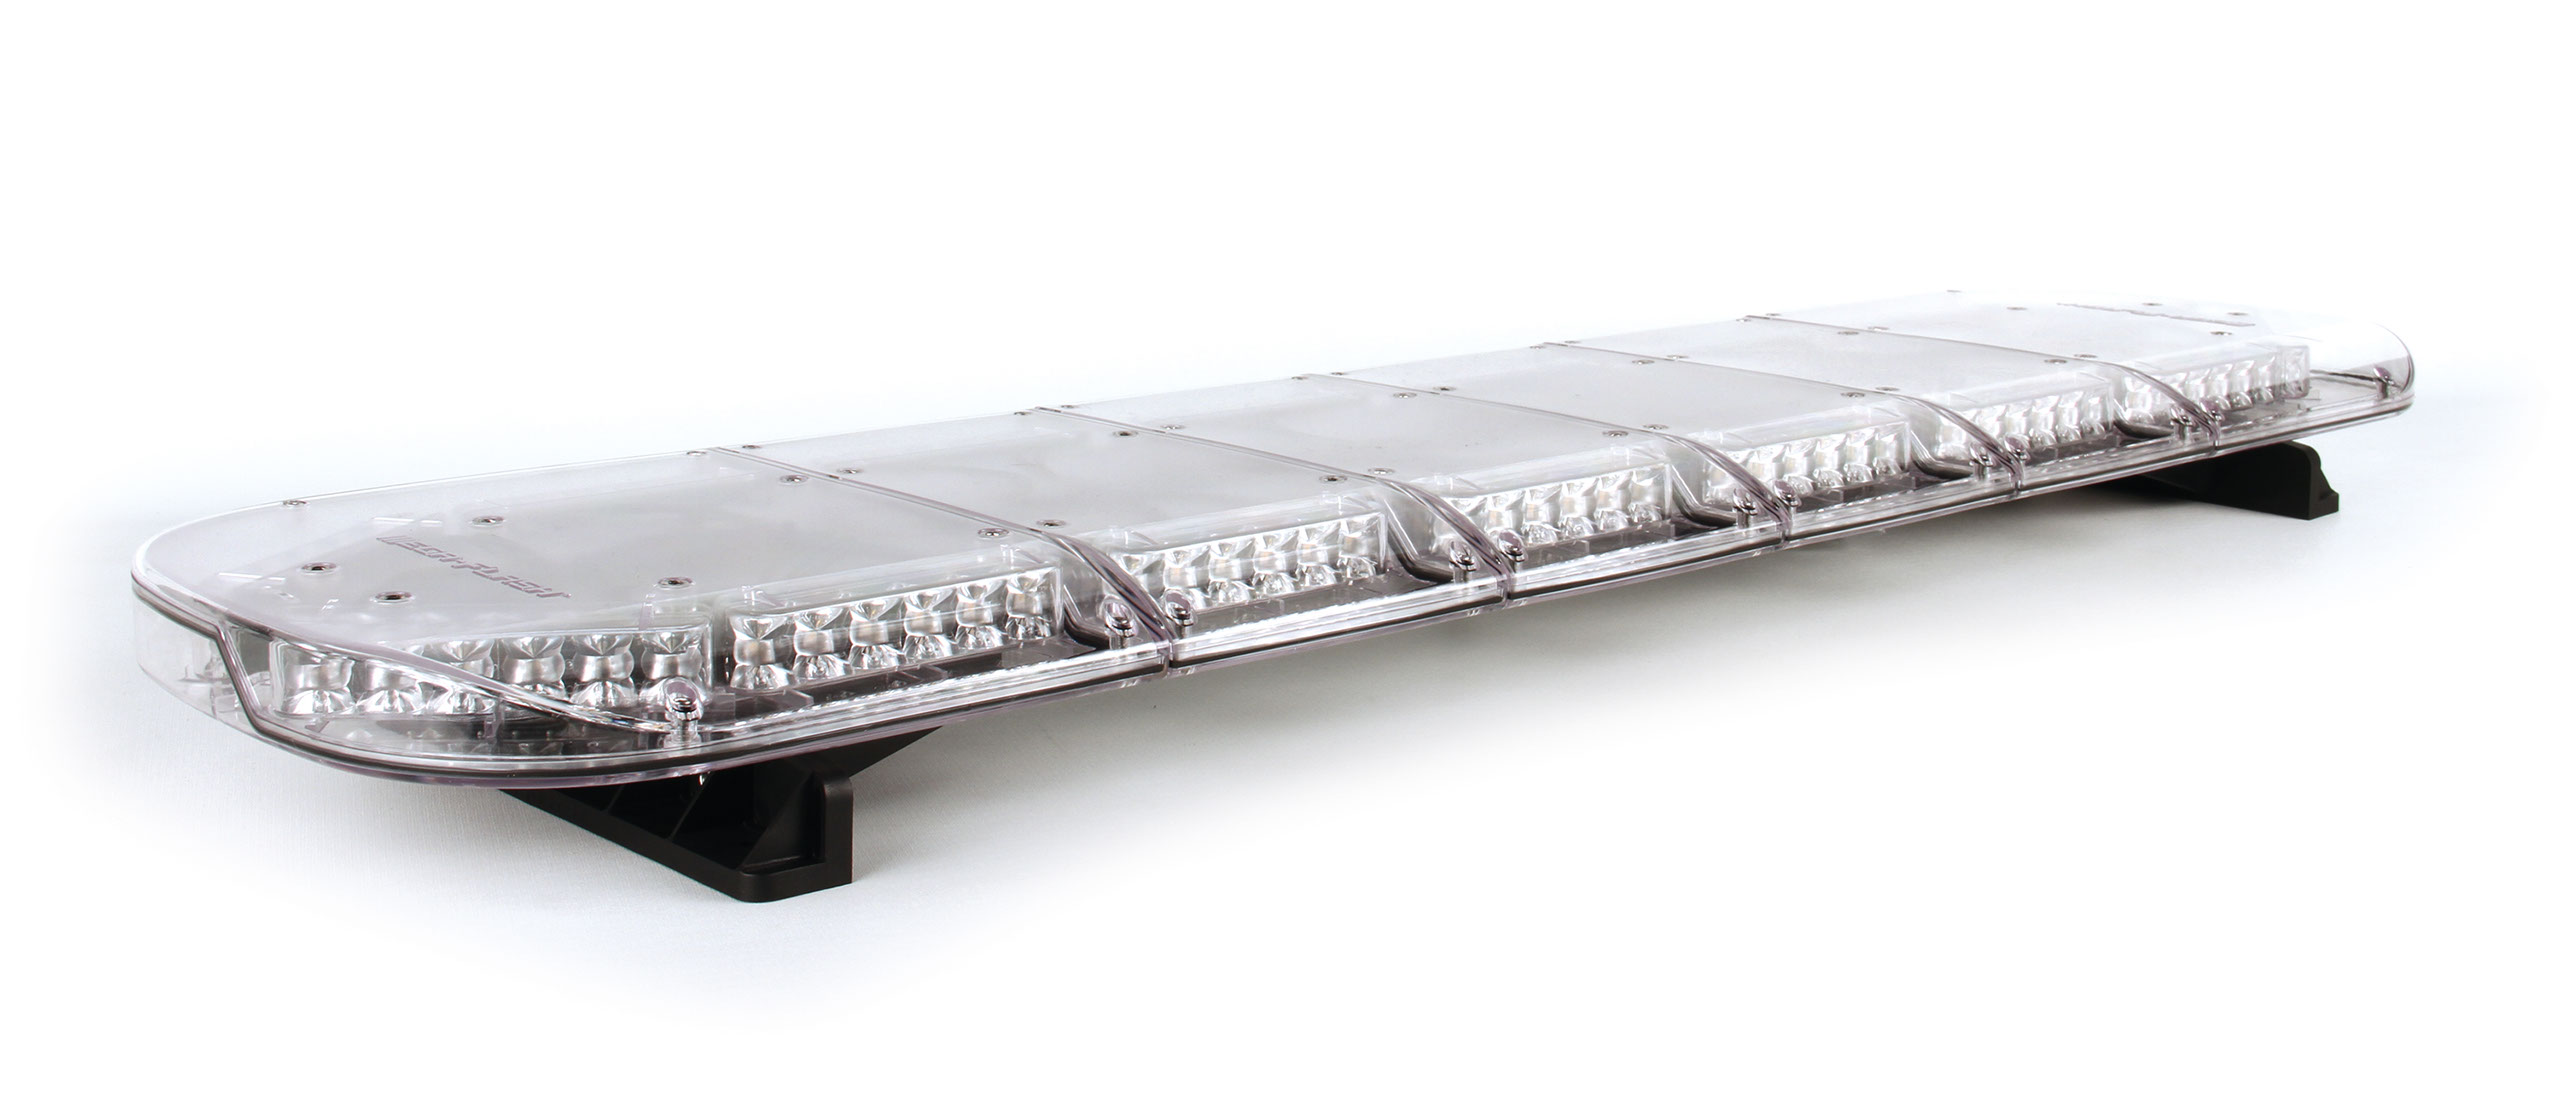 "Redtronic Mega Flash  41"" BULLITT Light Bar - BL210S/310S"